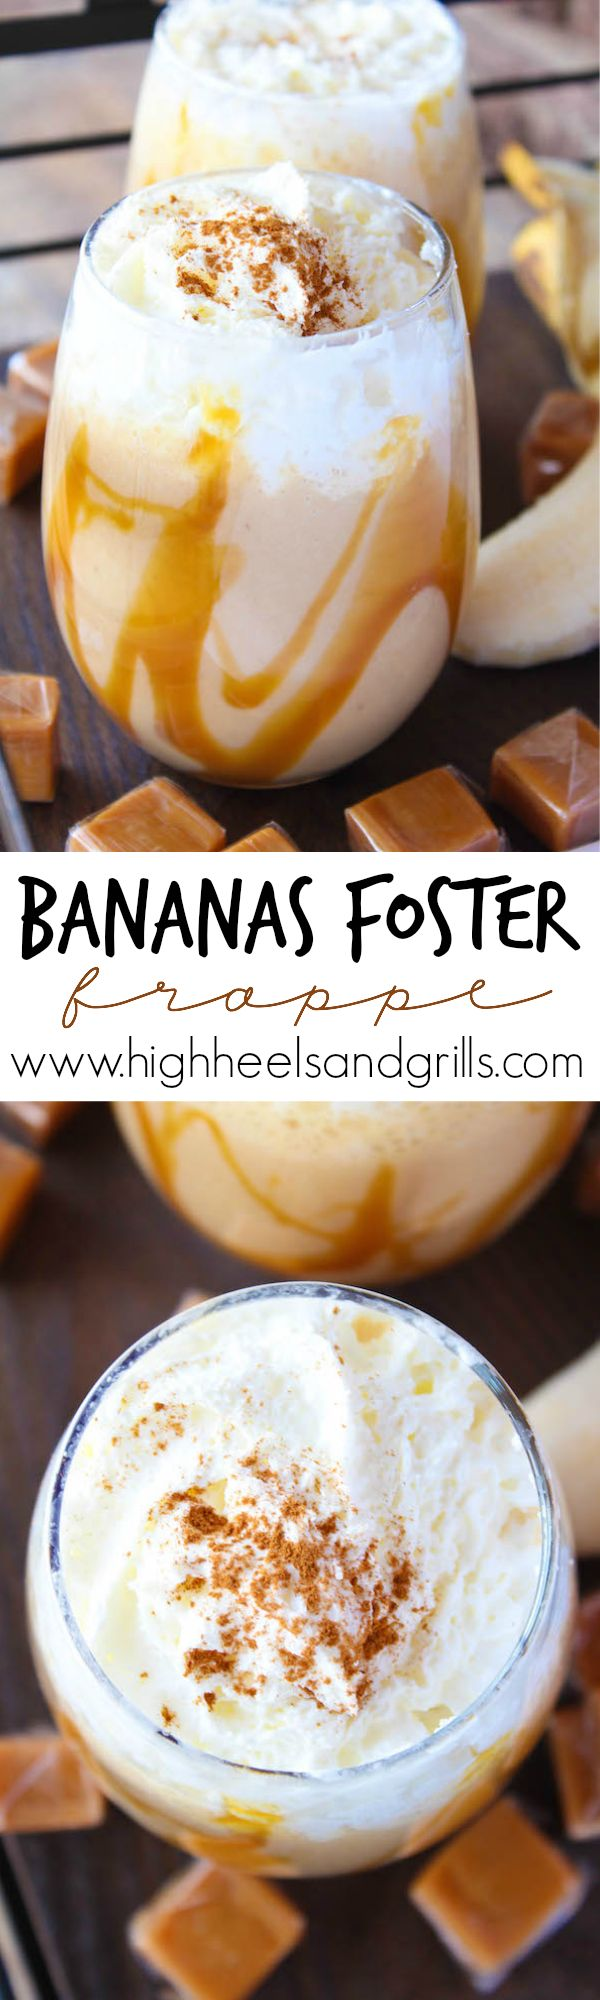 Bananas Foster Frappe - This is such a fun dessert recipe and makes it easy to be able to drink!